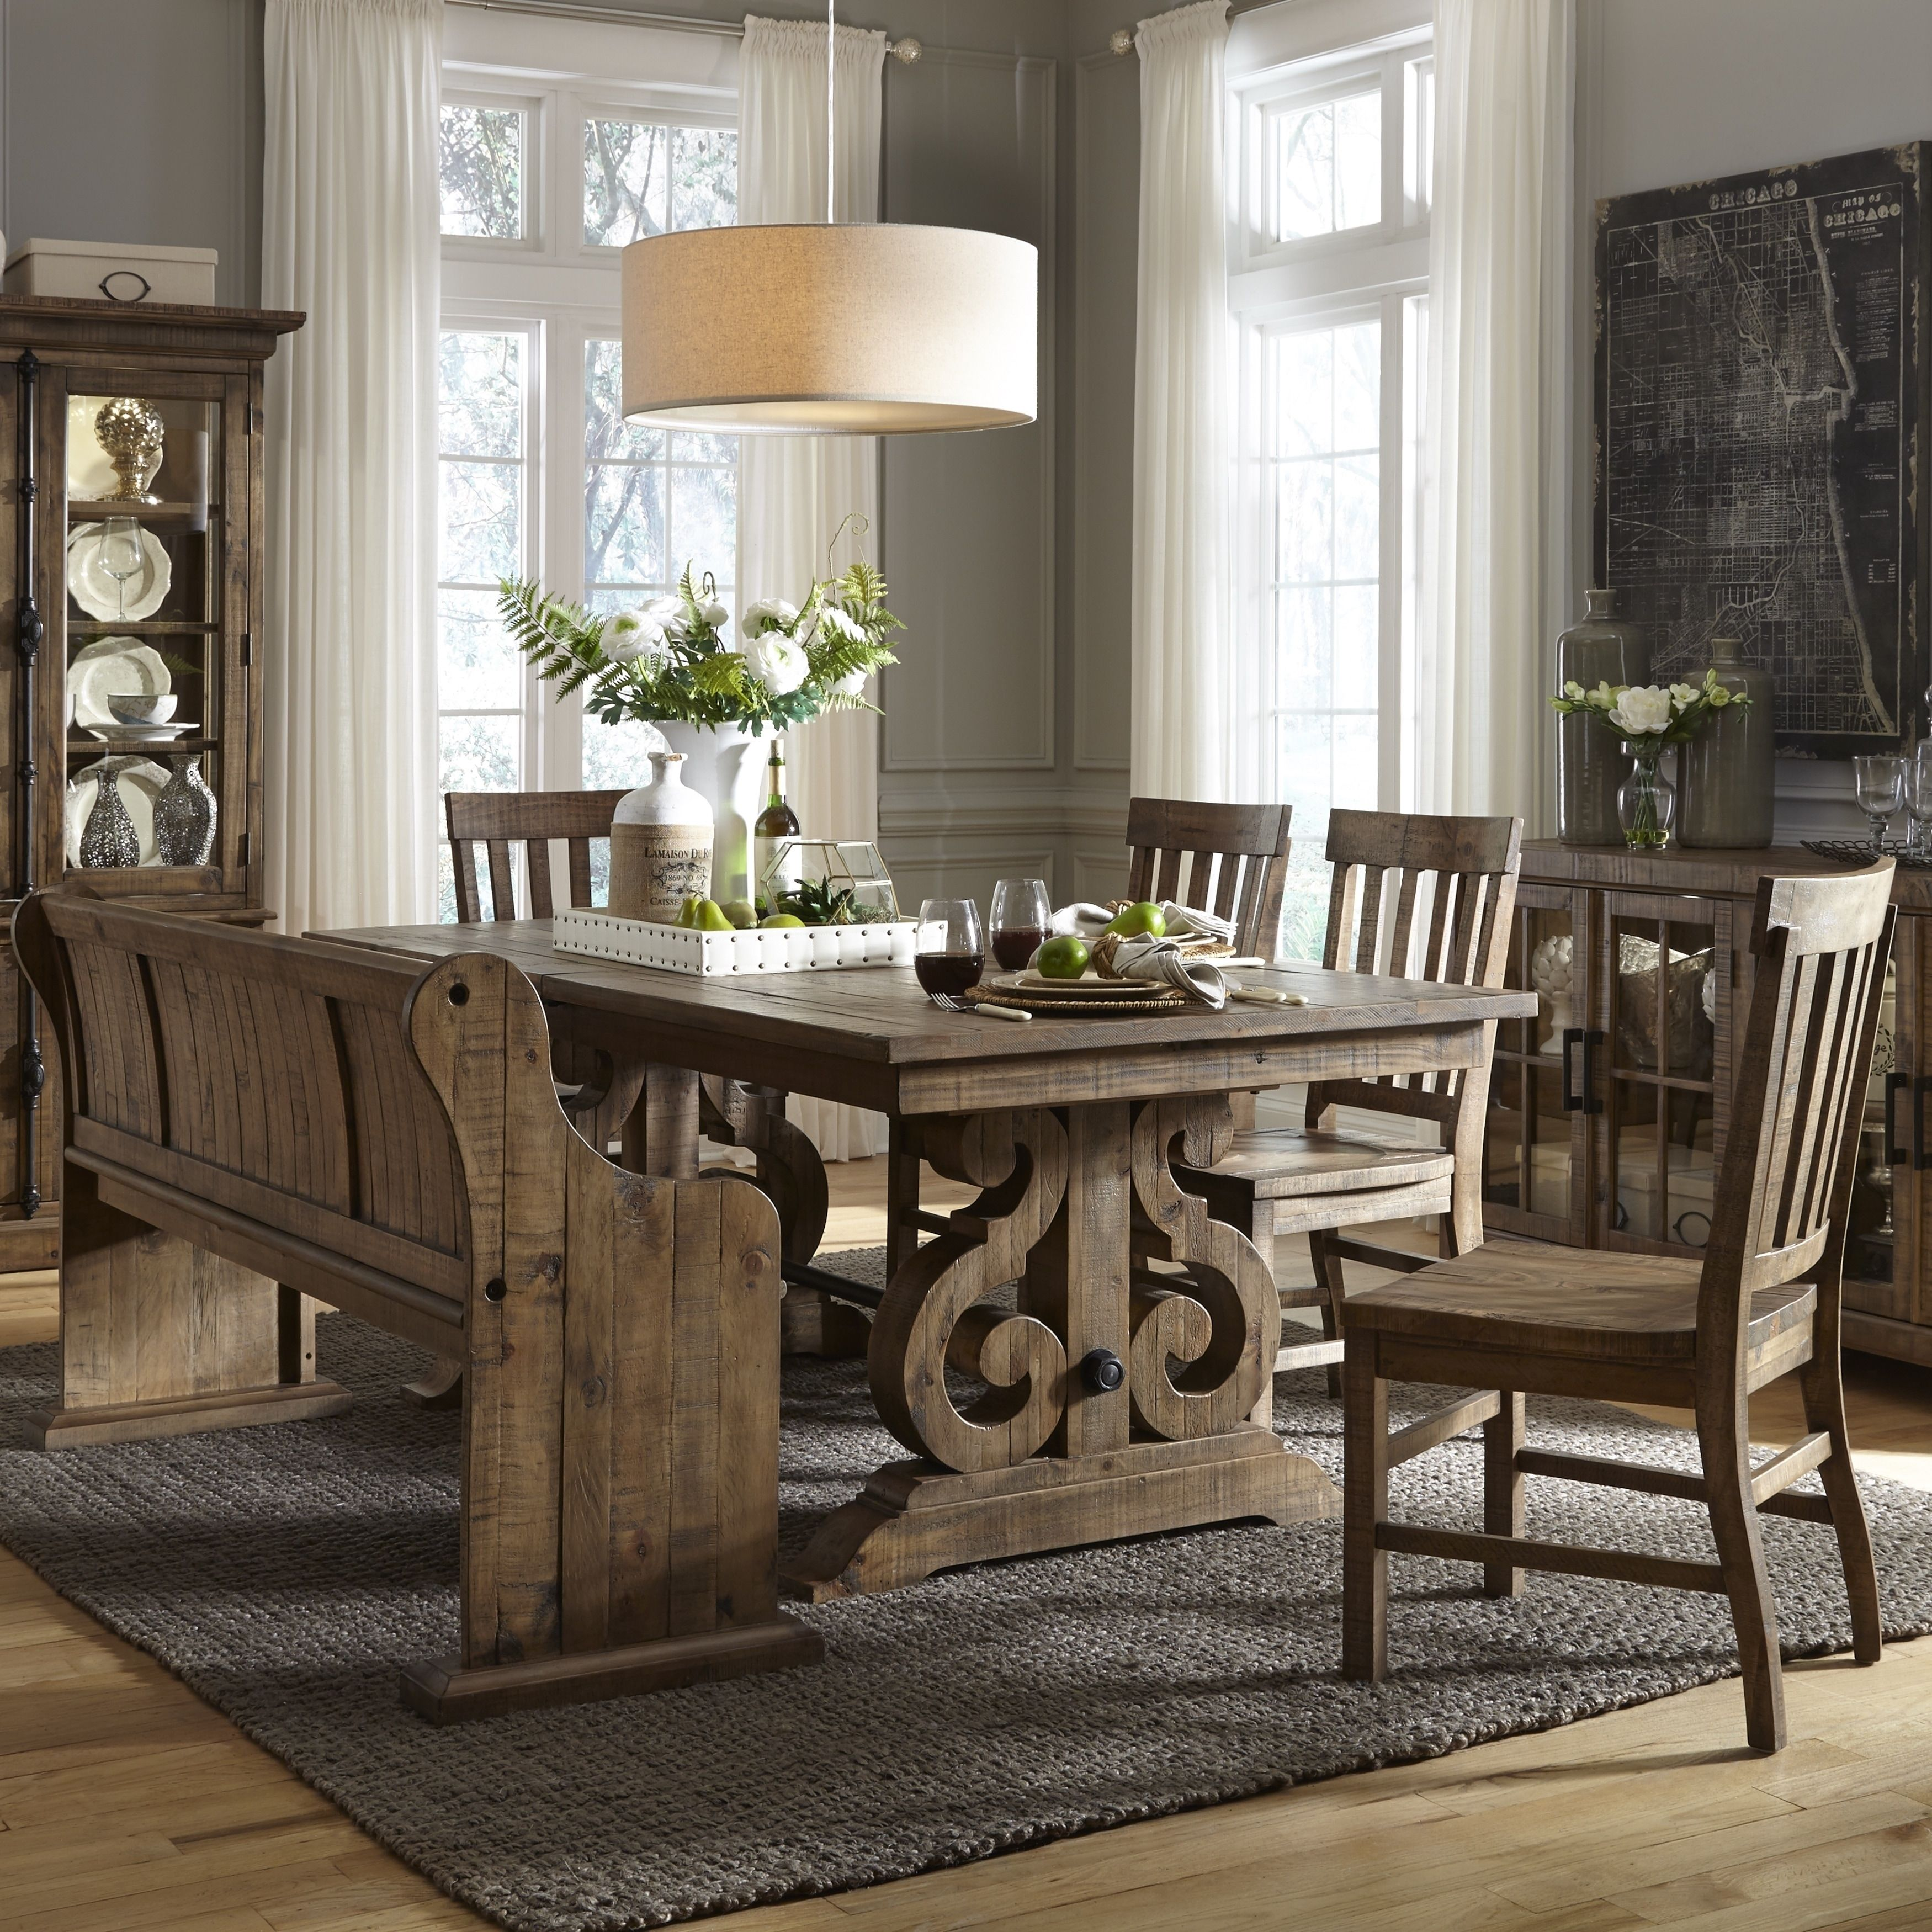 Gracewood Hollow Aldous Rectangular Wood Dining Table In